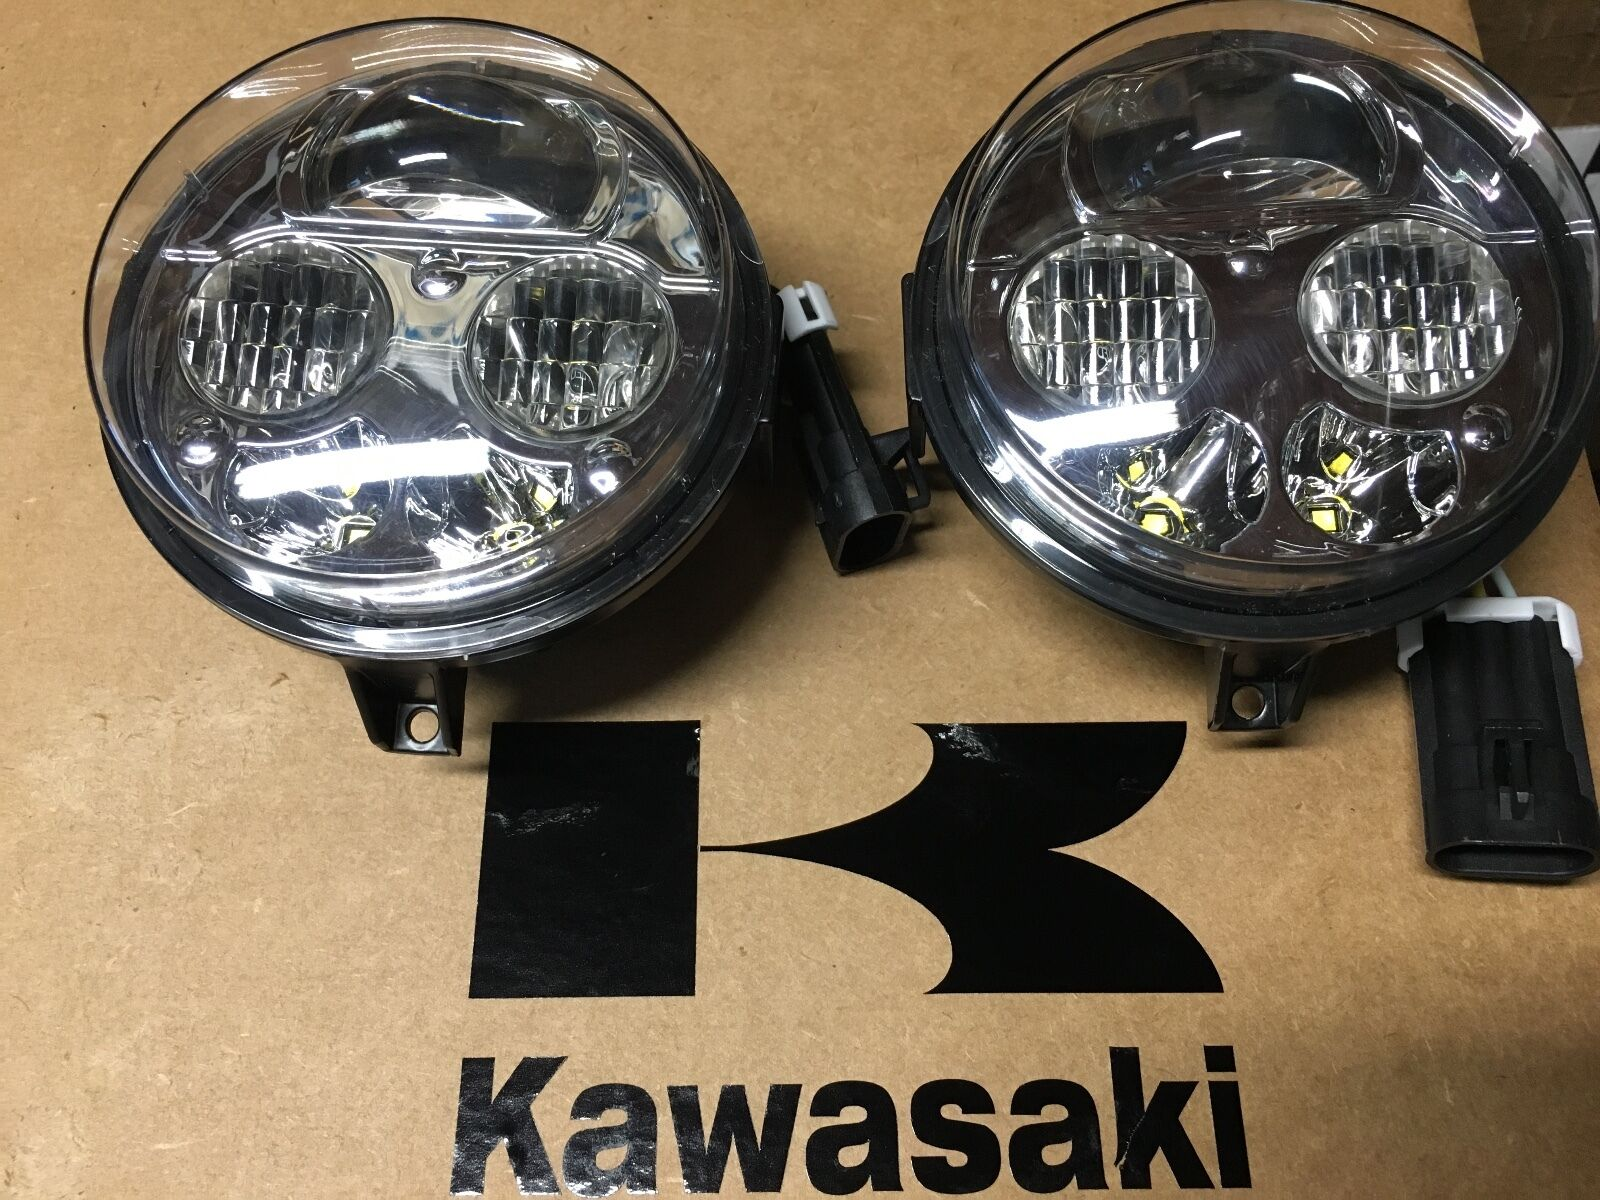 12 18 Kawasaki Brute Force 750 Led Headlights Conversion Kit Pair 3x3 Fog Light Installledrockerswitchdiagramjpg 1 Of 12only 0 Available